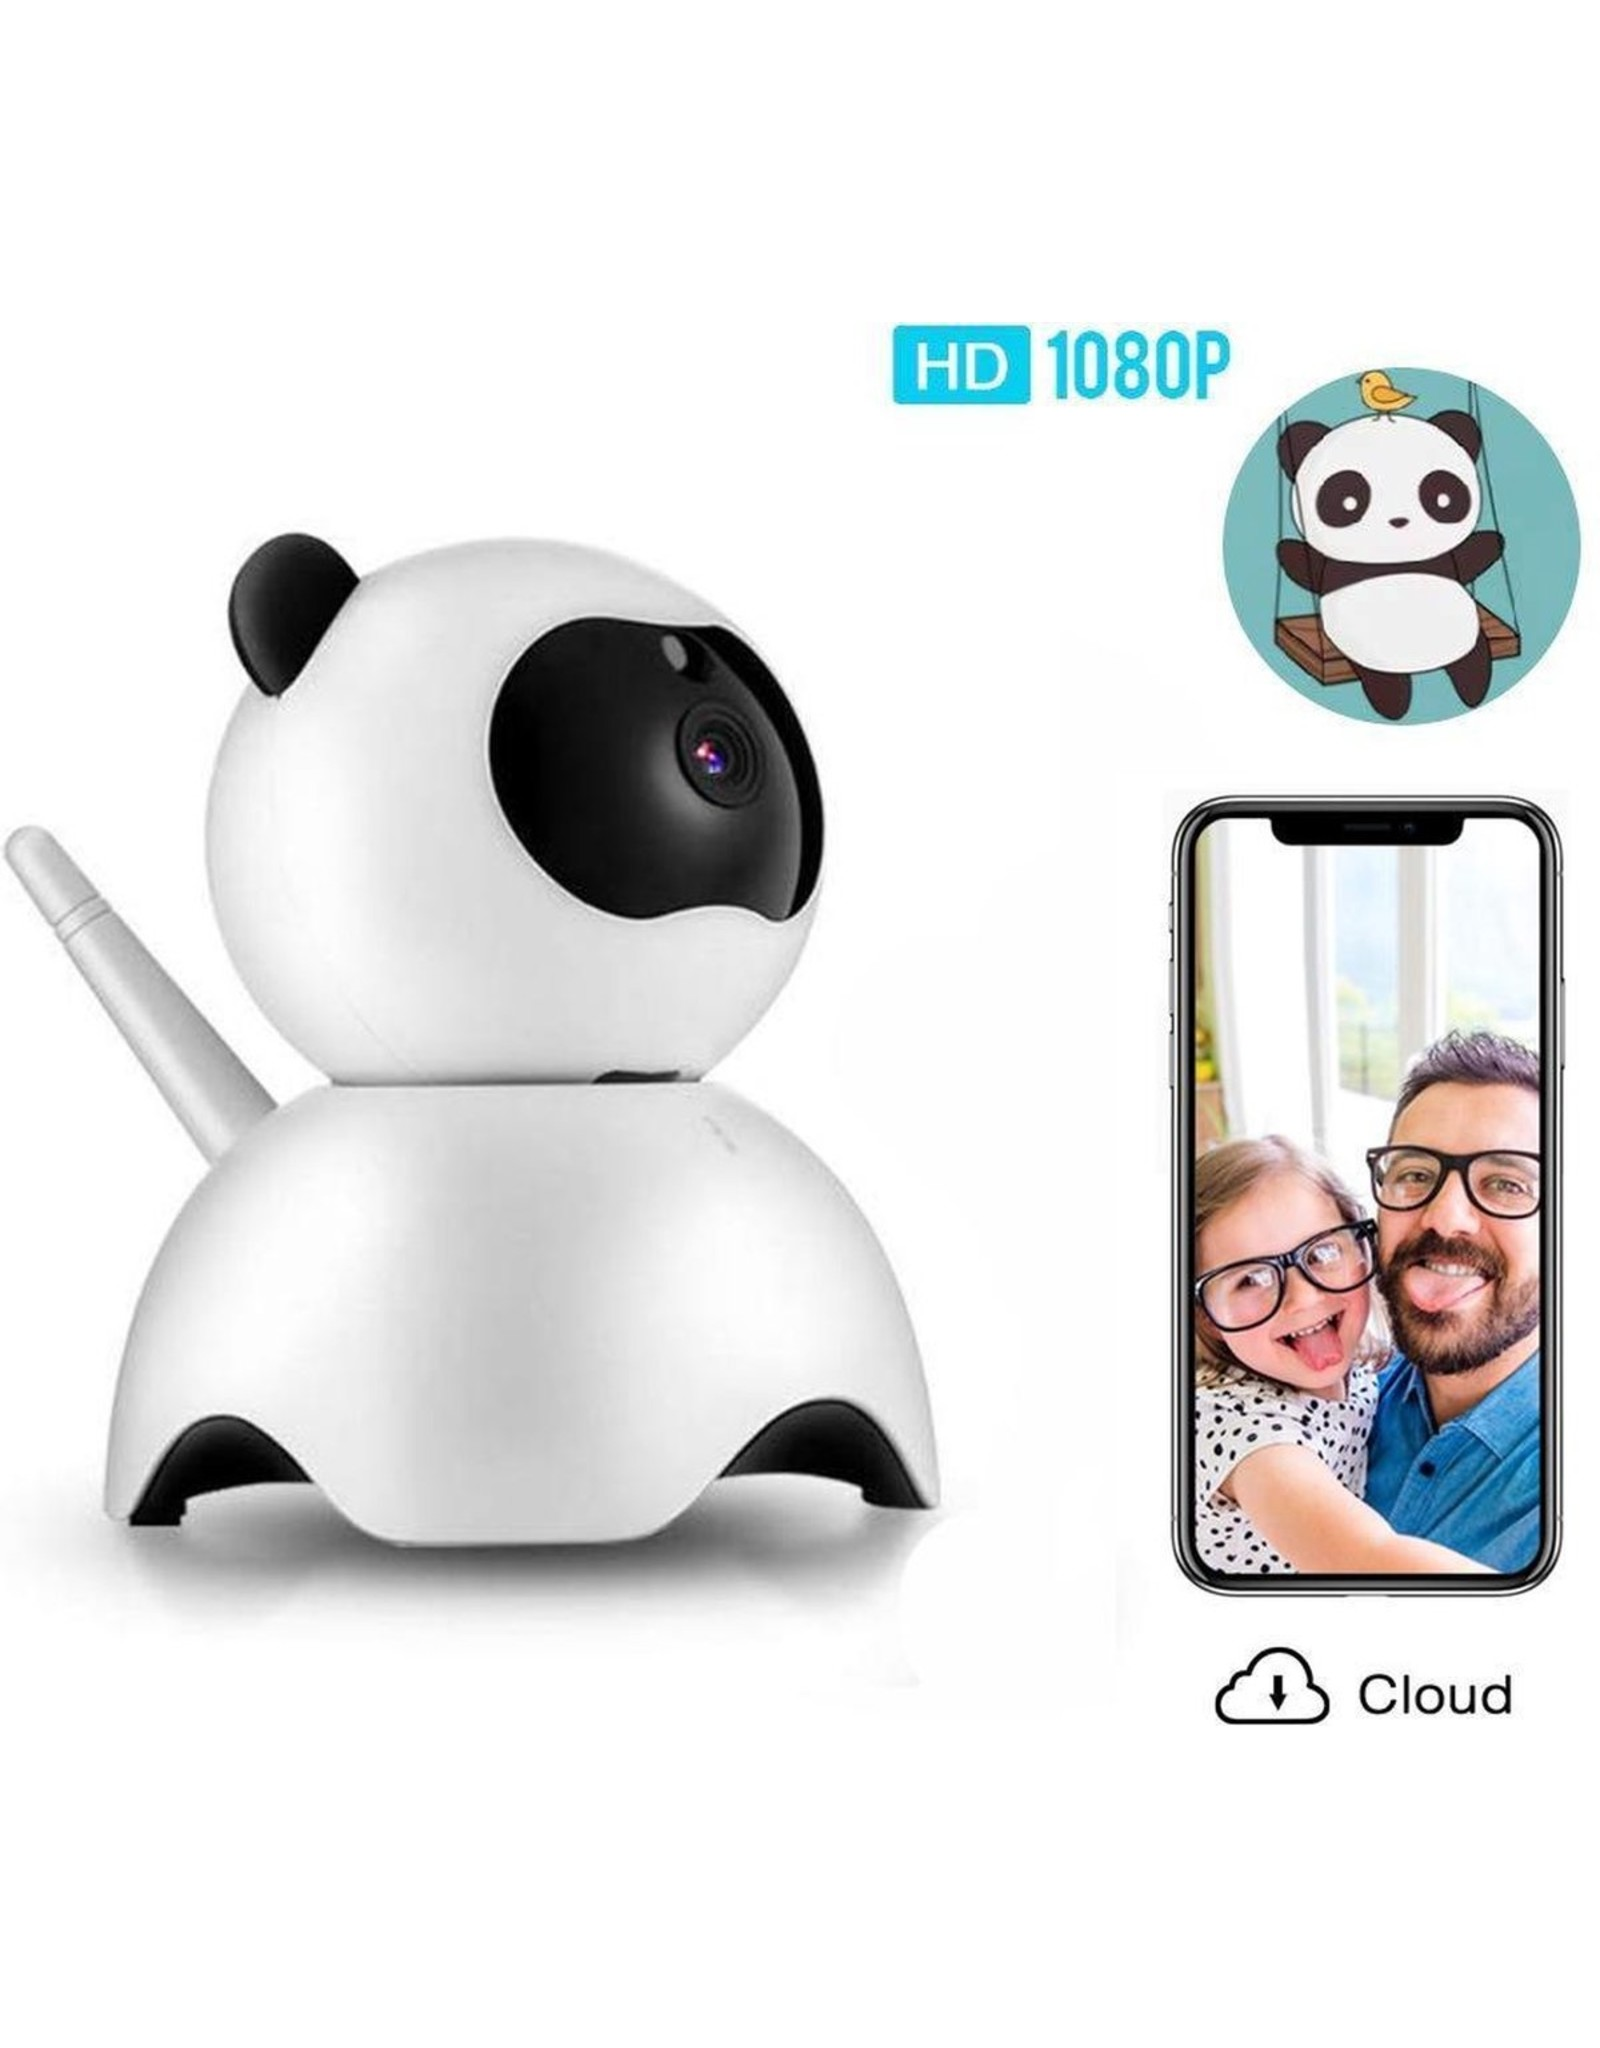 1080P FHD WiFi IP Security Camera -Video Baby Monitor